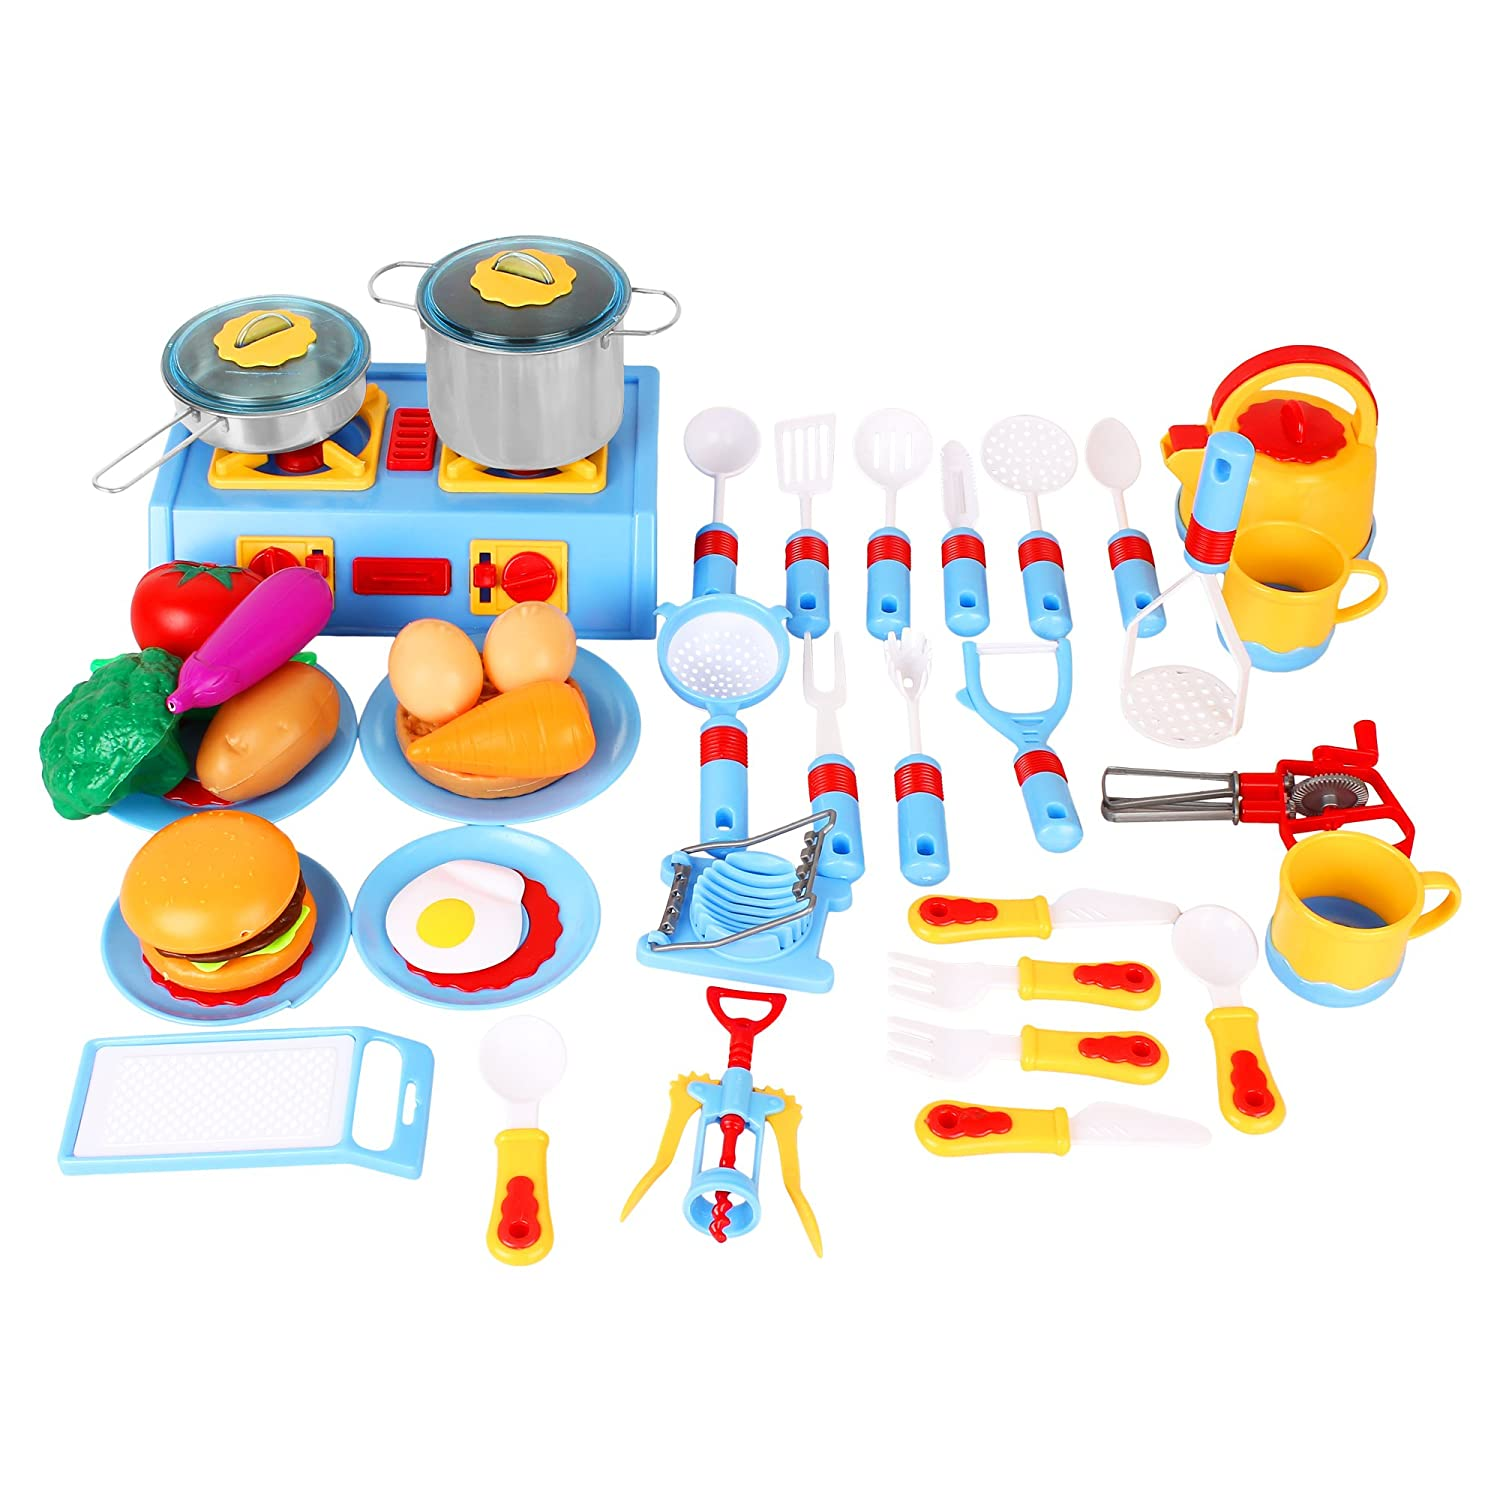 44 Pieces Mini Stove Kitchen Appliance Pretend Play Food Toy Set for Kids with Stainless Steel Metal Pots and Pans Liberty Imports